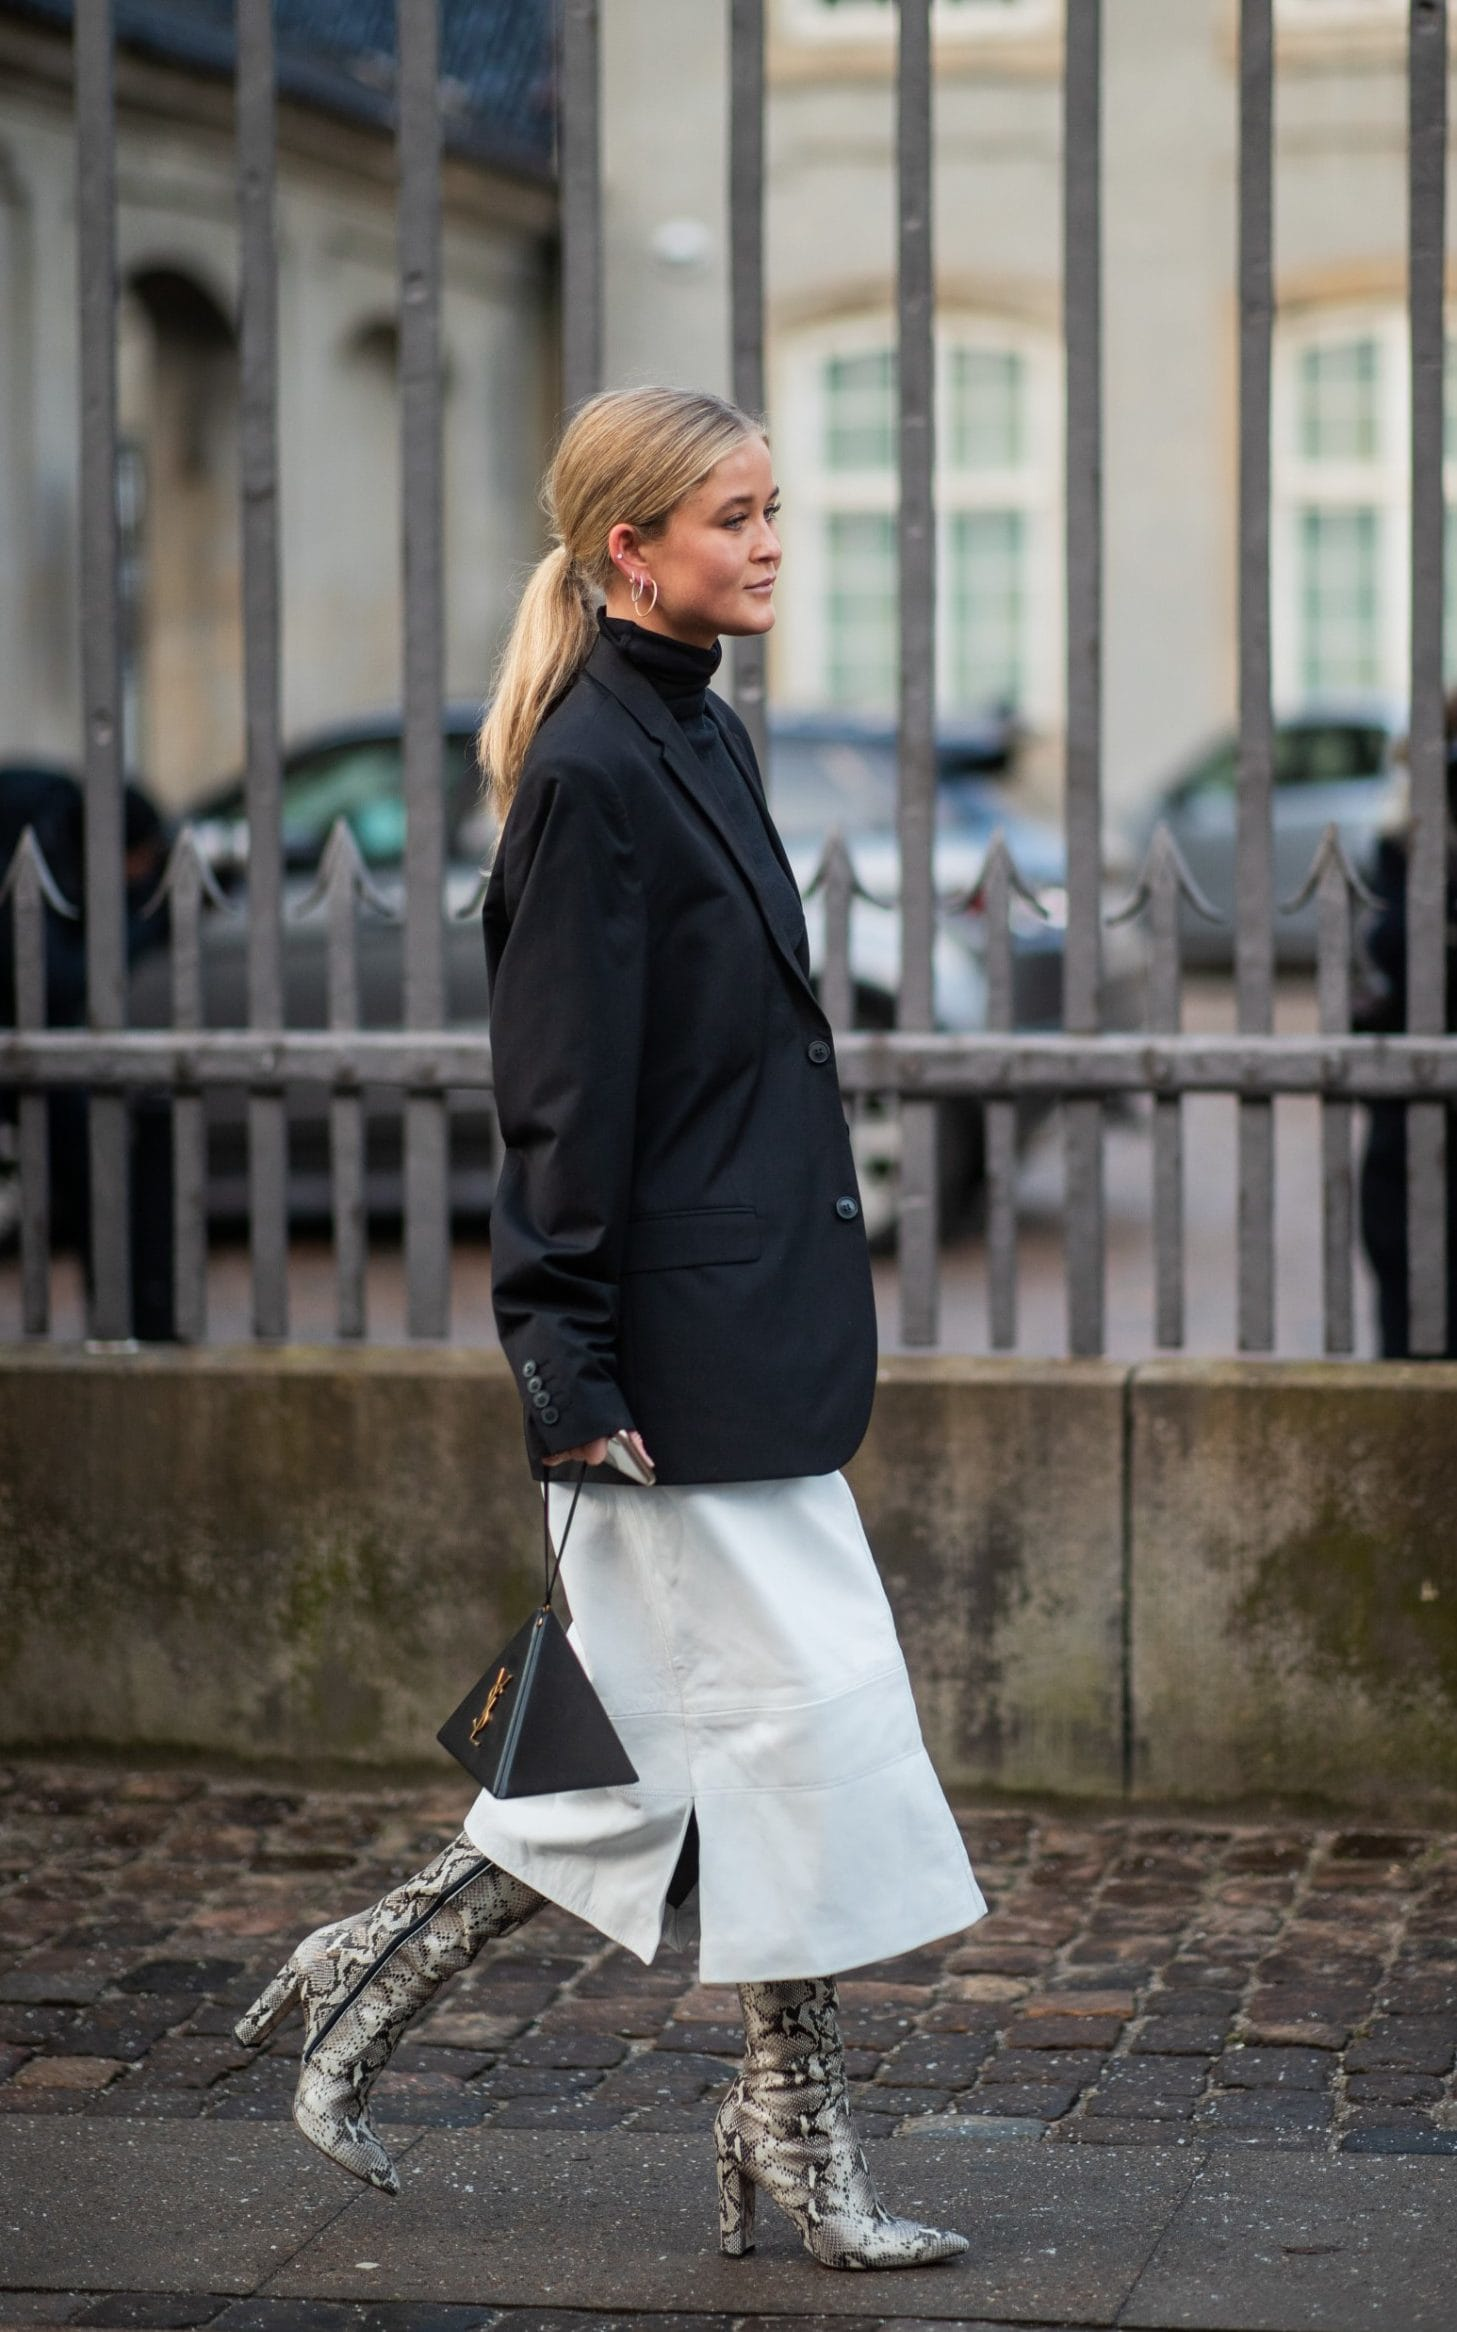 Monochome at it's best with the statement boots that add a detail to this outfit.